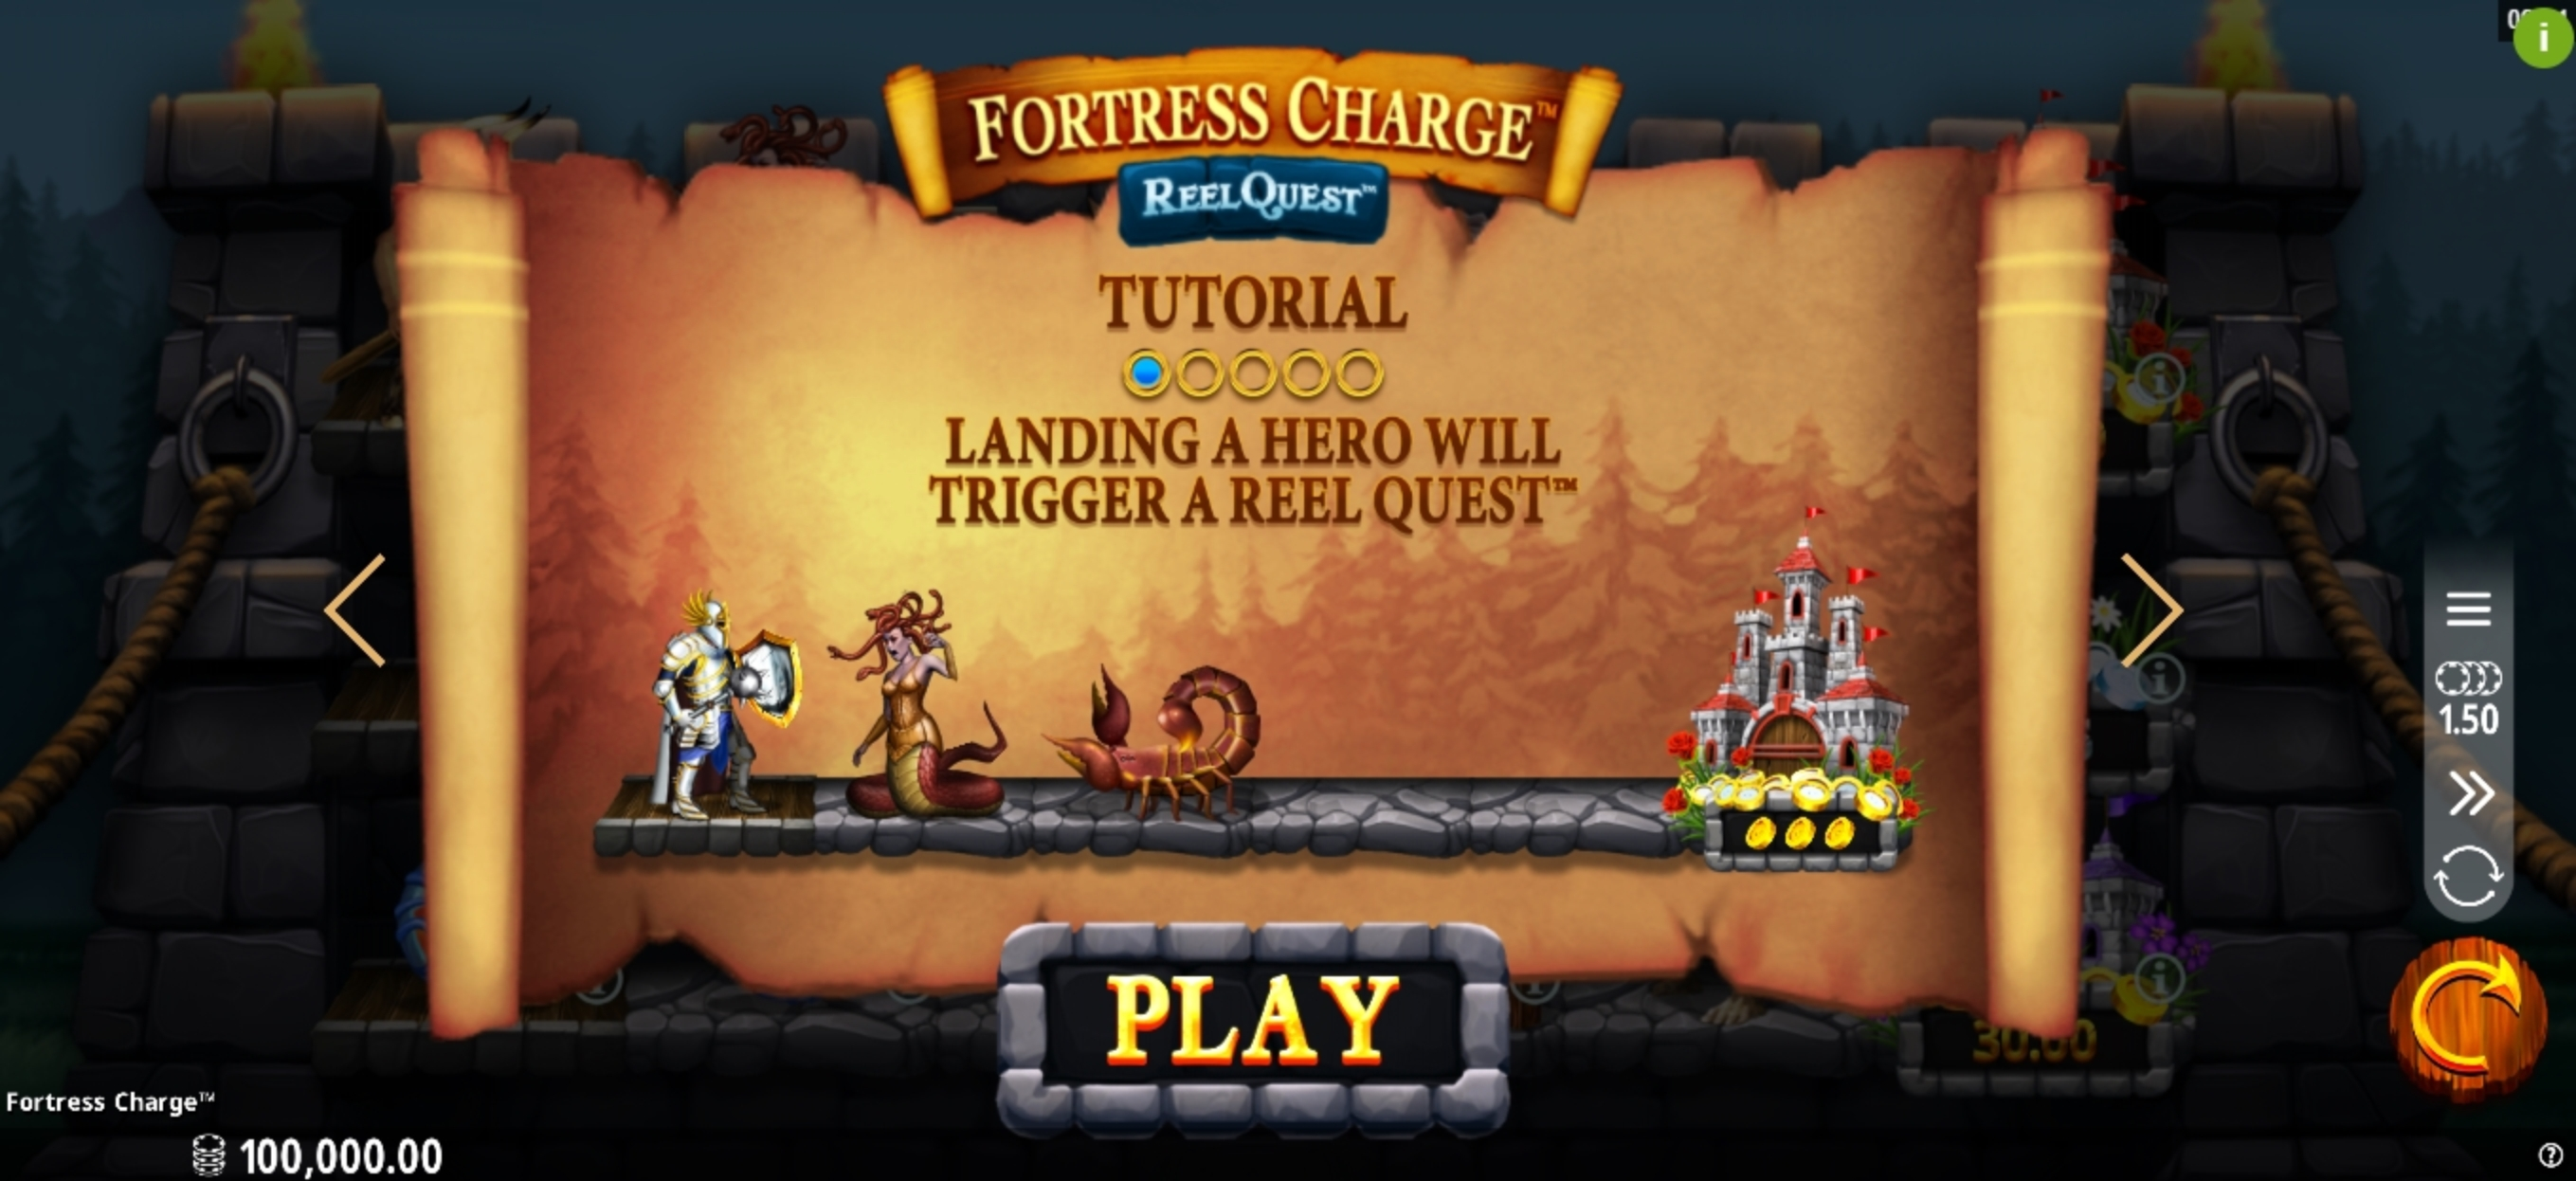 Play Fortress Charge Free Casino Slot Game by Crazy Tooth Studio